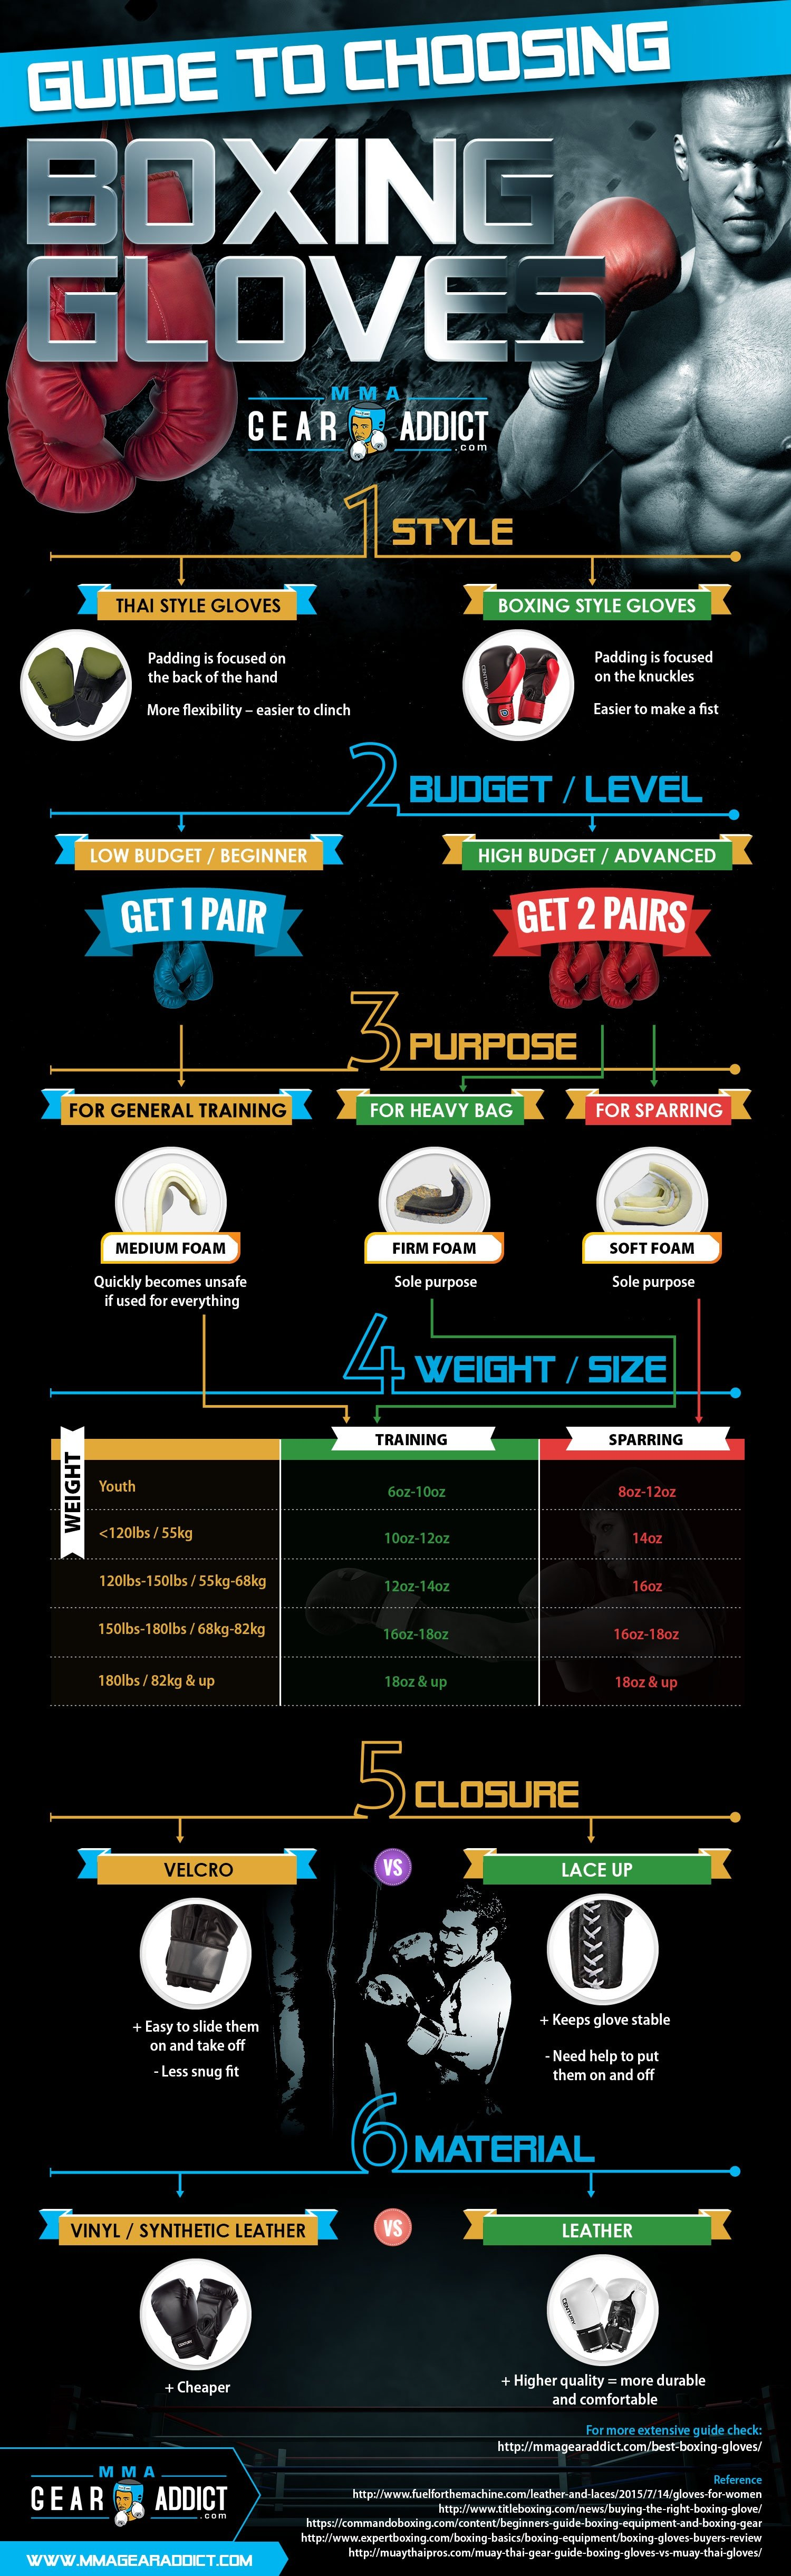 A chart explaining the differences in boxing glove styles.